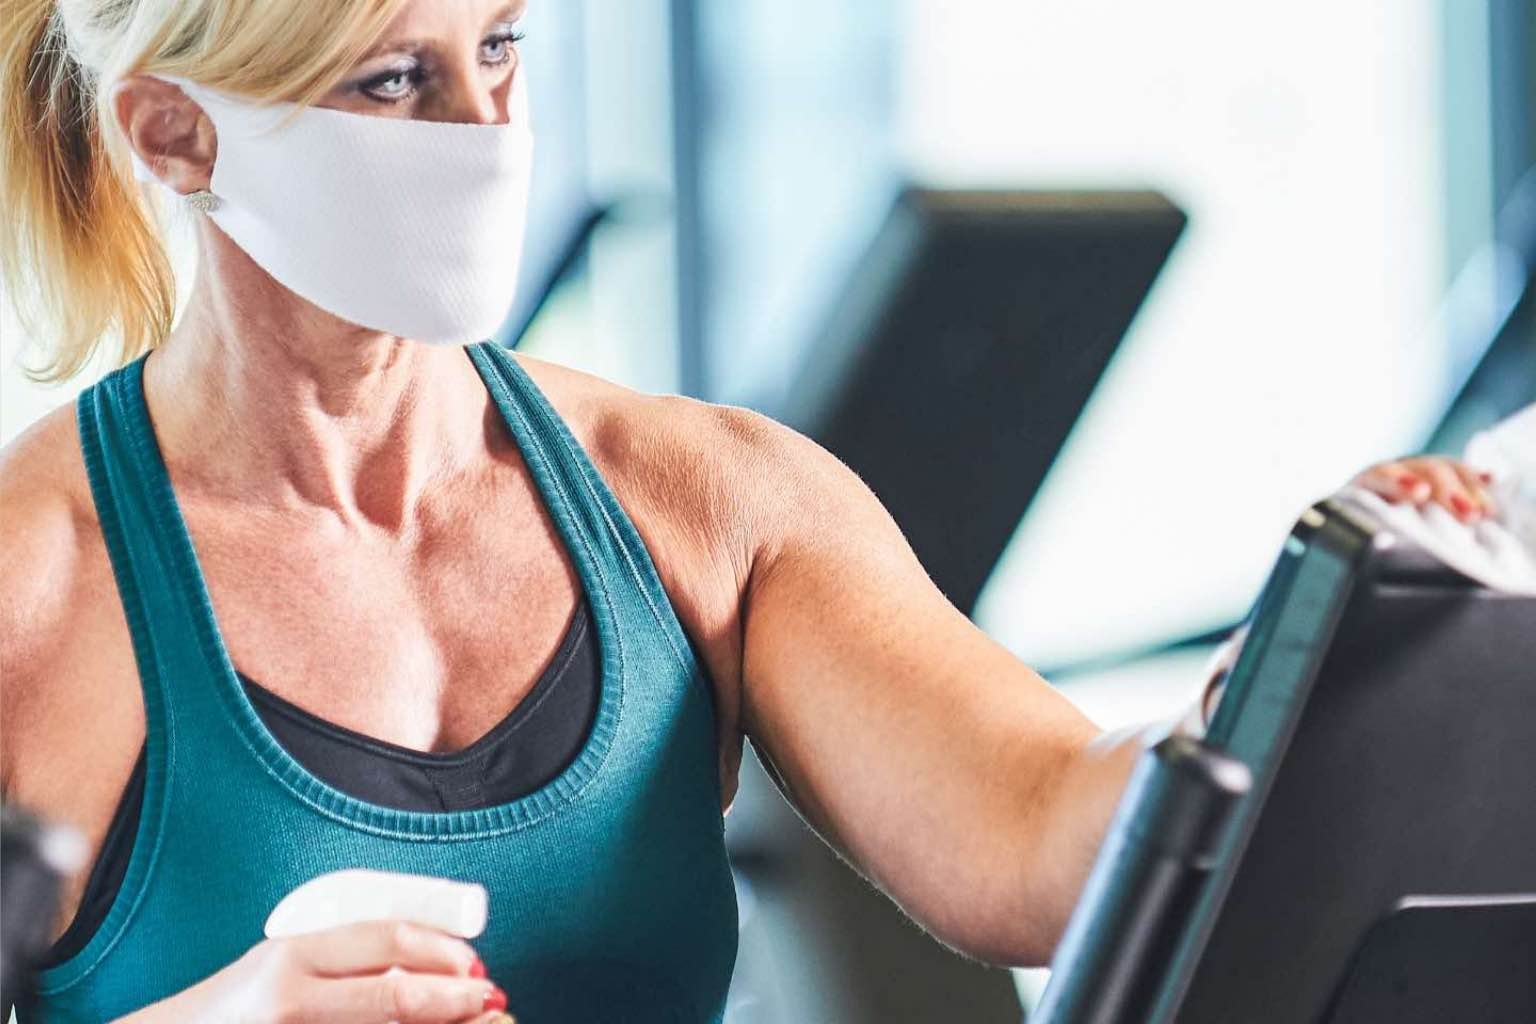 A woman in workout gear and a face mask wipes down her treadmill with disinfectant